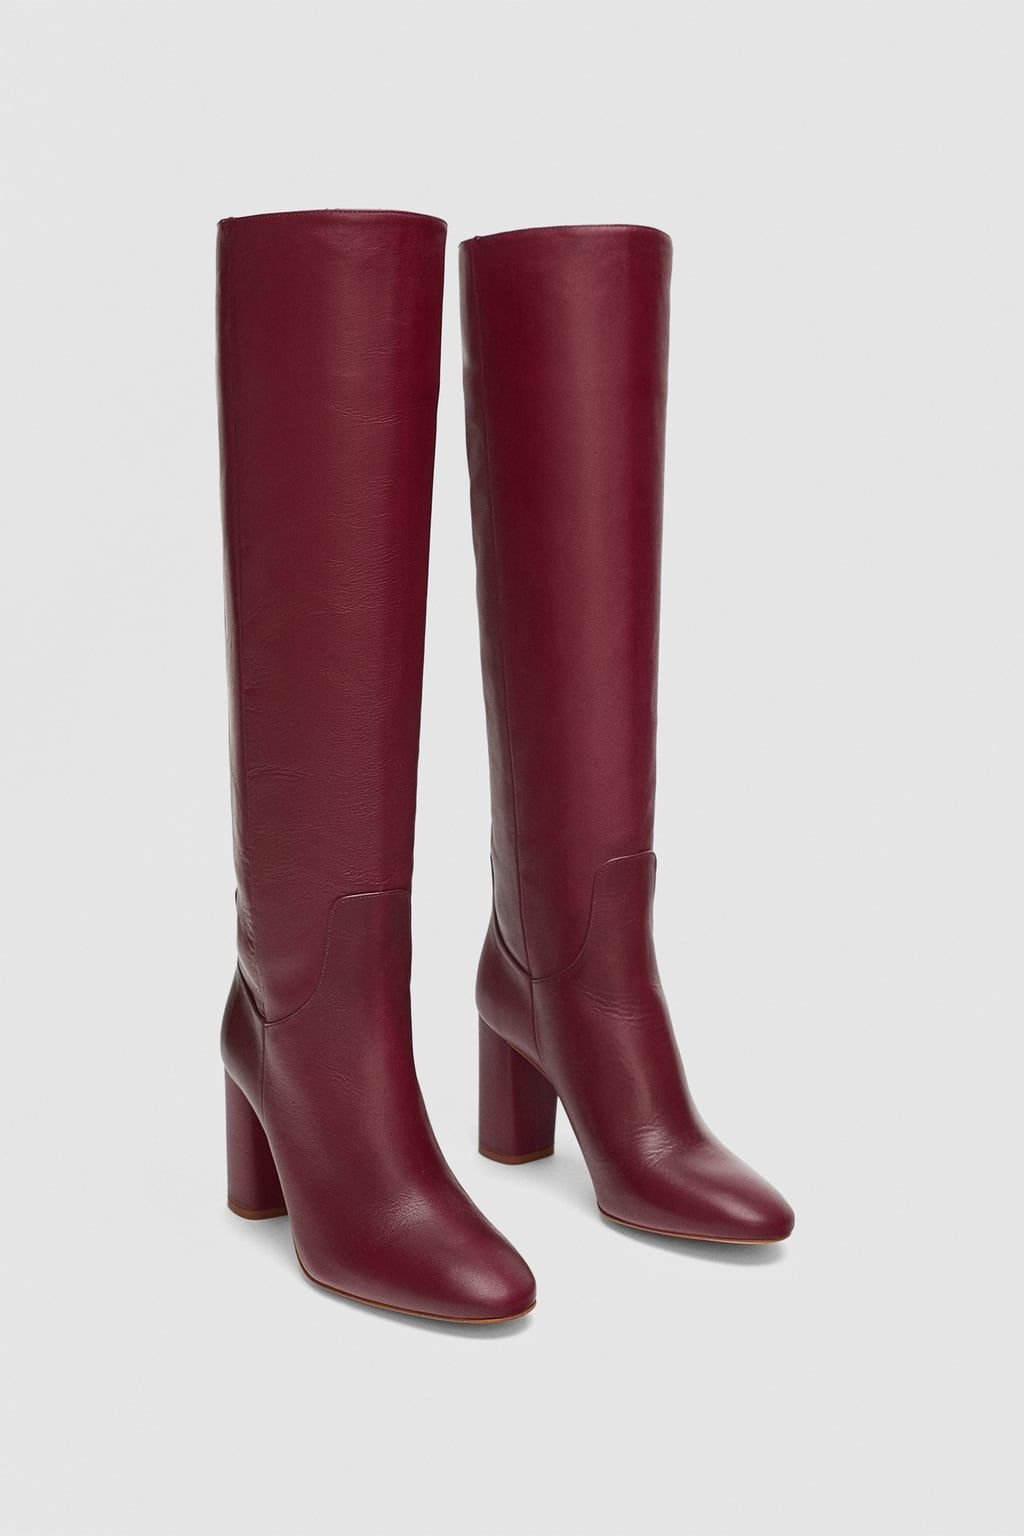 c07b589425e Image 1 of HIGH HEELED LEATHER BOOTS from Zara